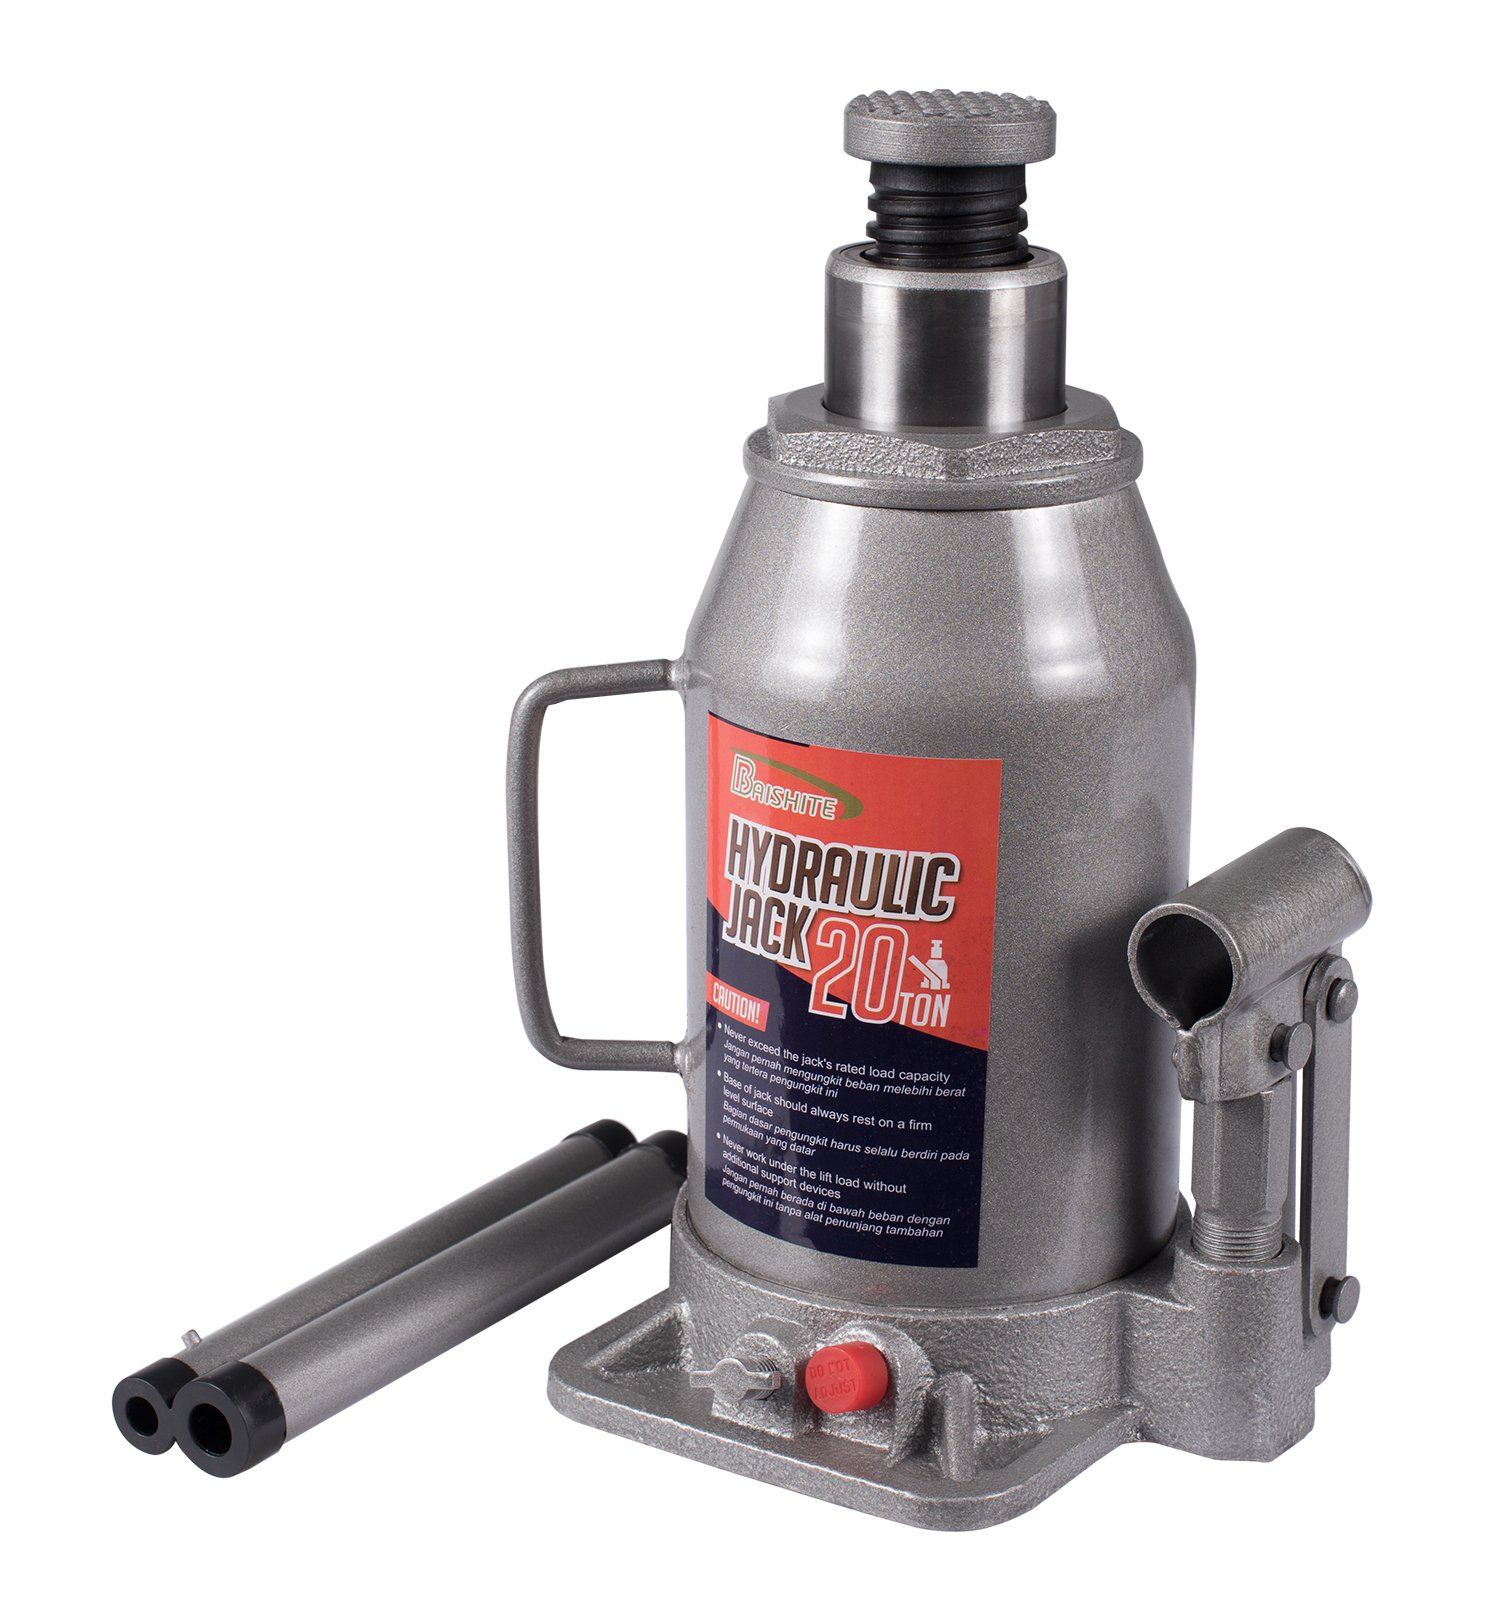 BAISHITE Hydraulic Bottle Jack 10 Ton Capacity Grey